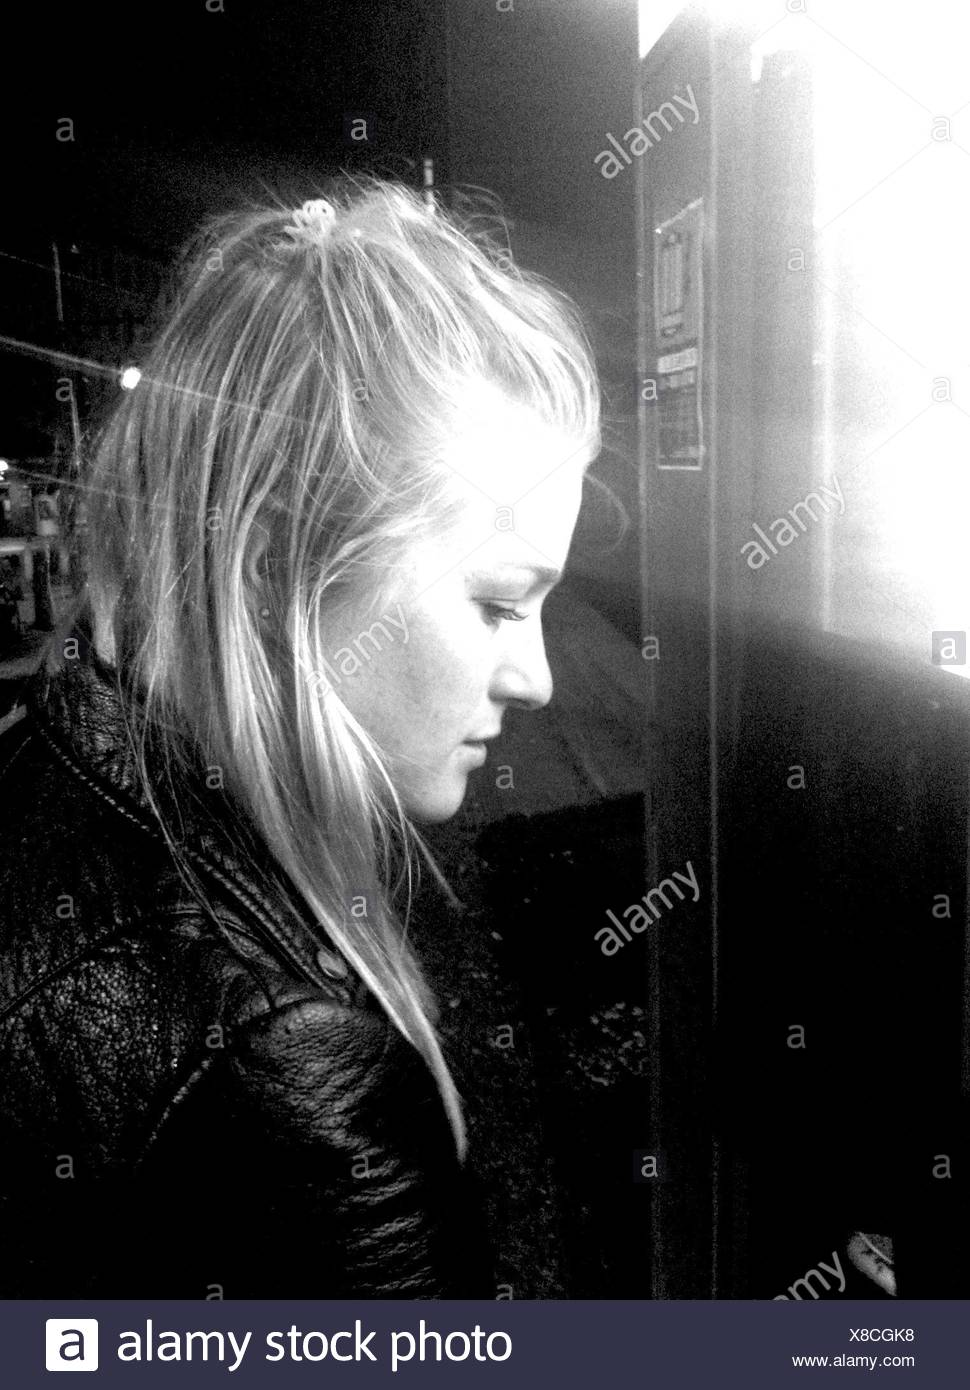 Vue de profil de femme debout par Ticket Machine la nuit Photo Stock